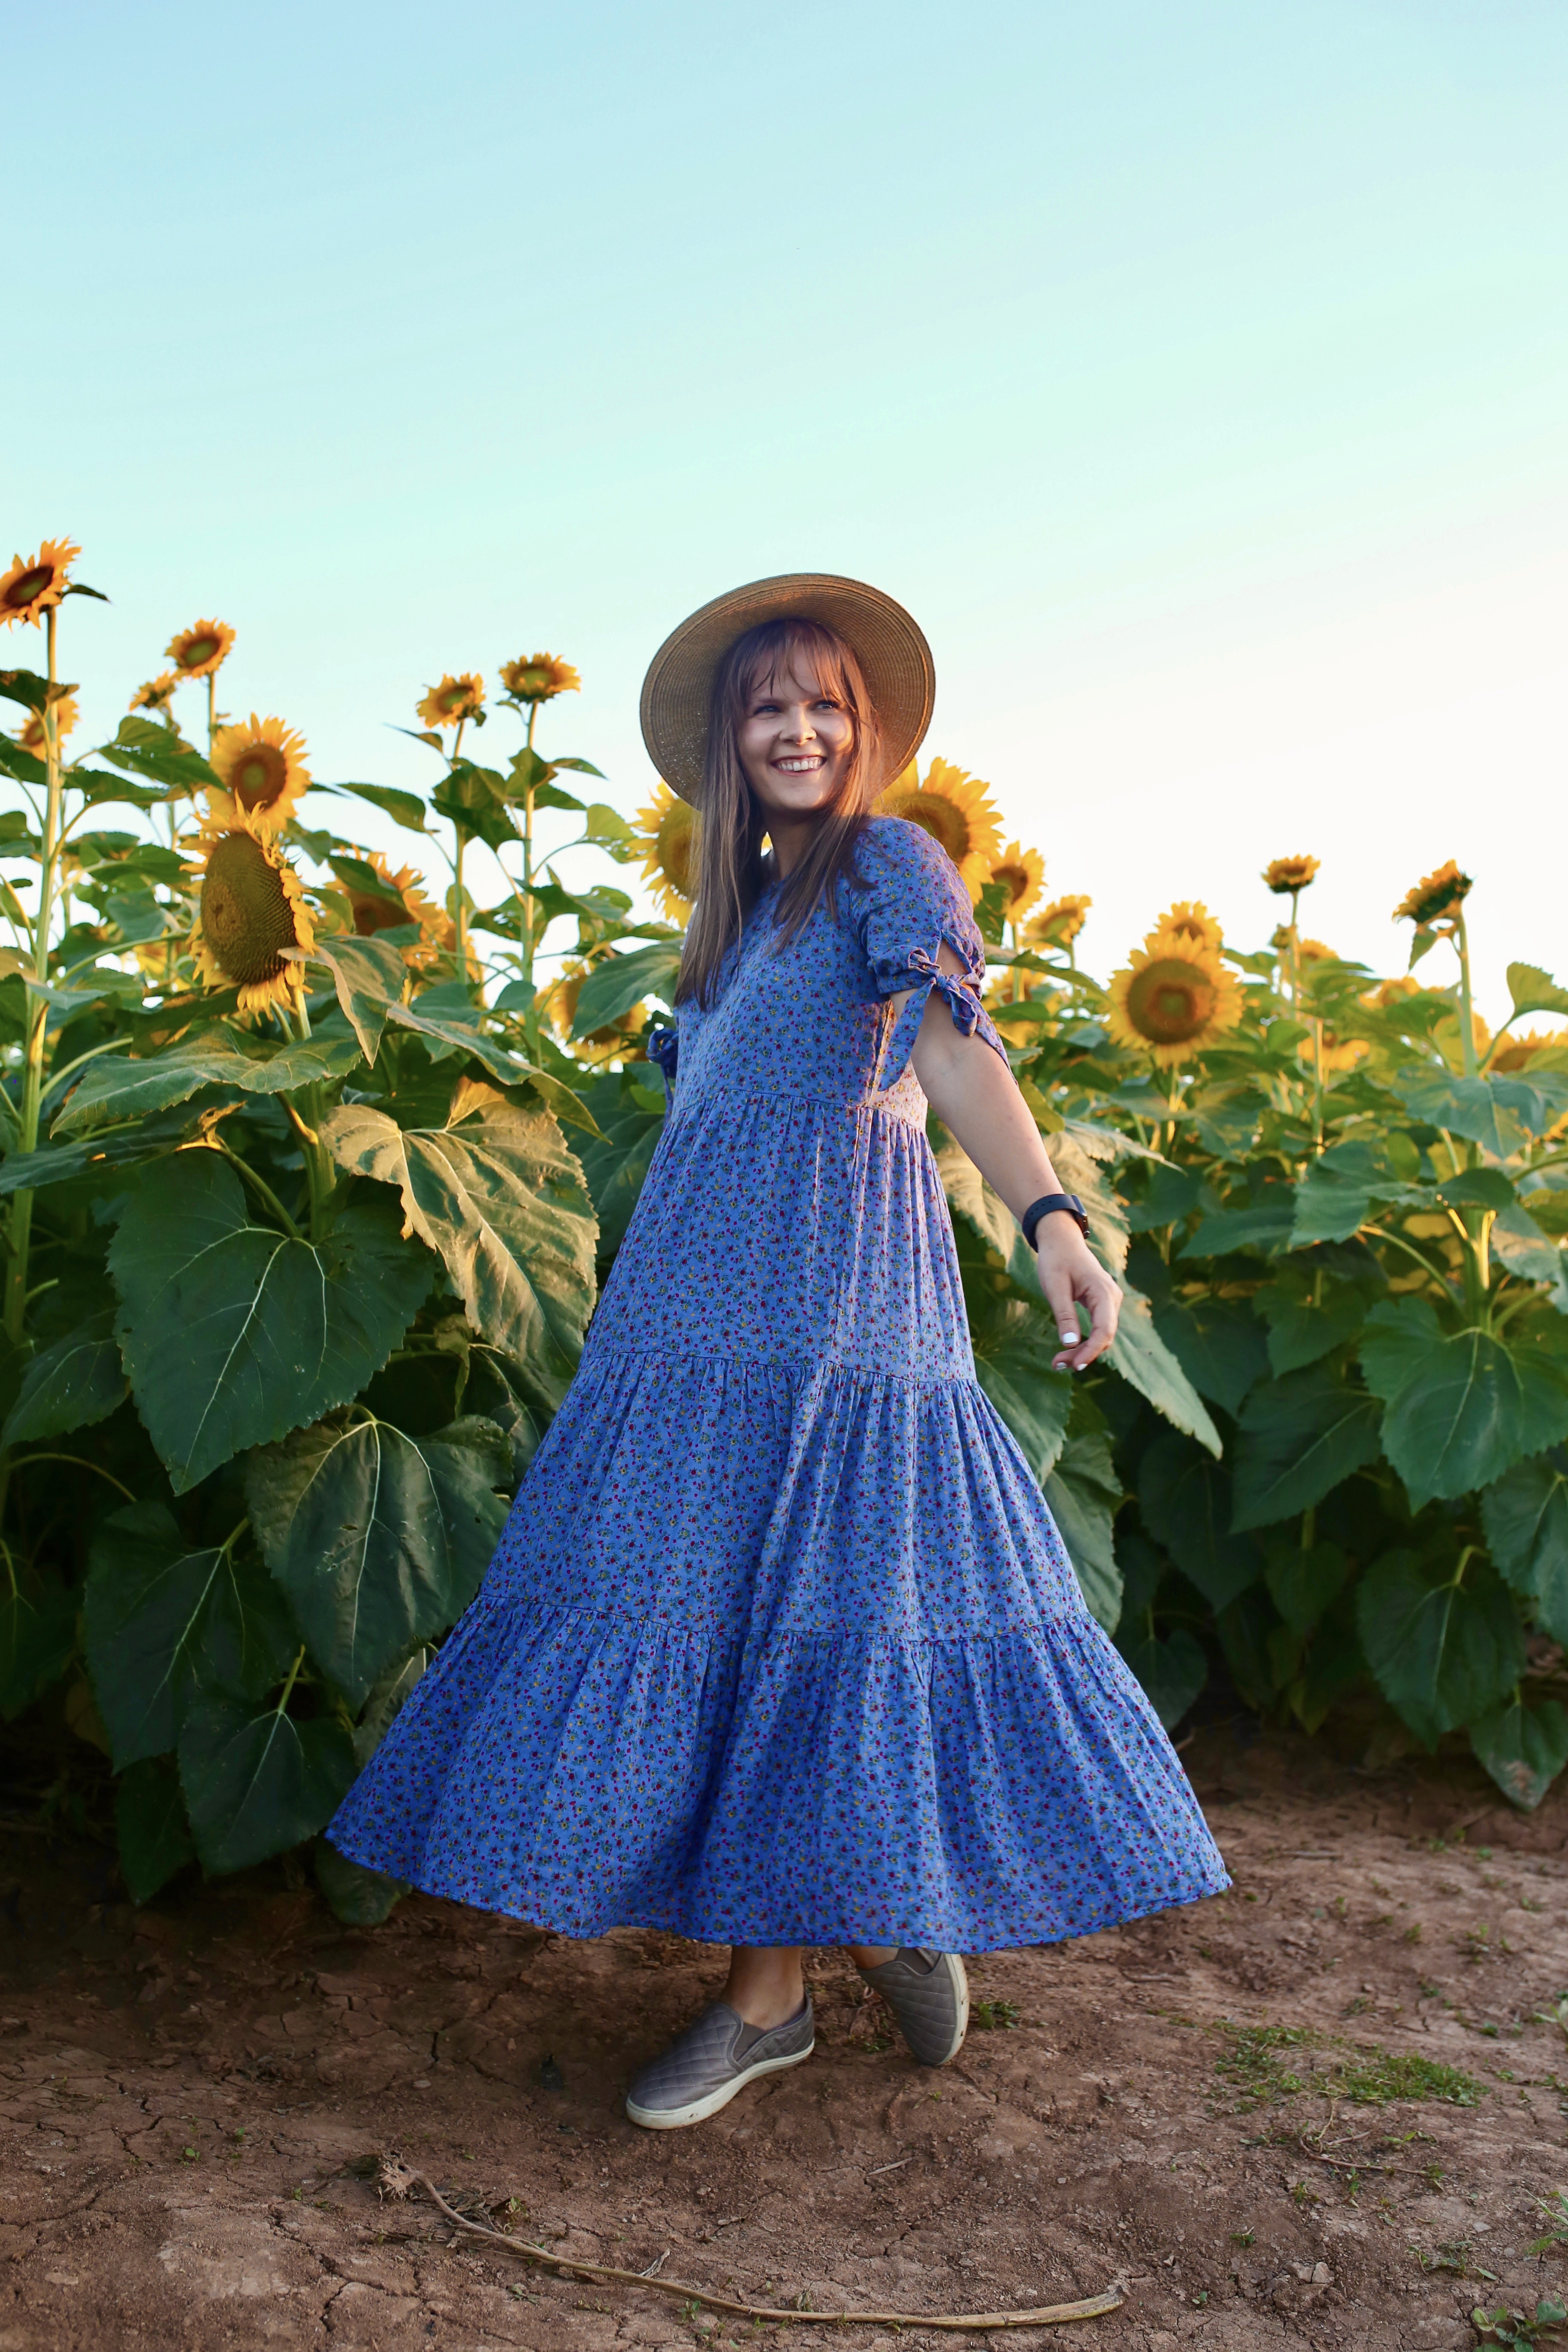 8 Actionable Tips for Traveling Post Quarantine - Exploring my own backyard by visiting a nearby sunflower field at sunset!